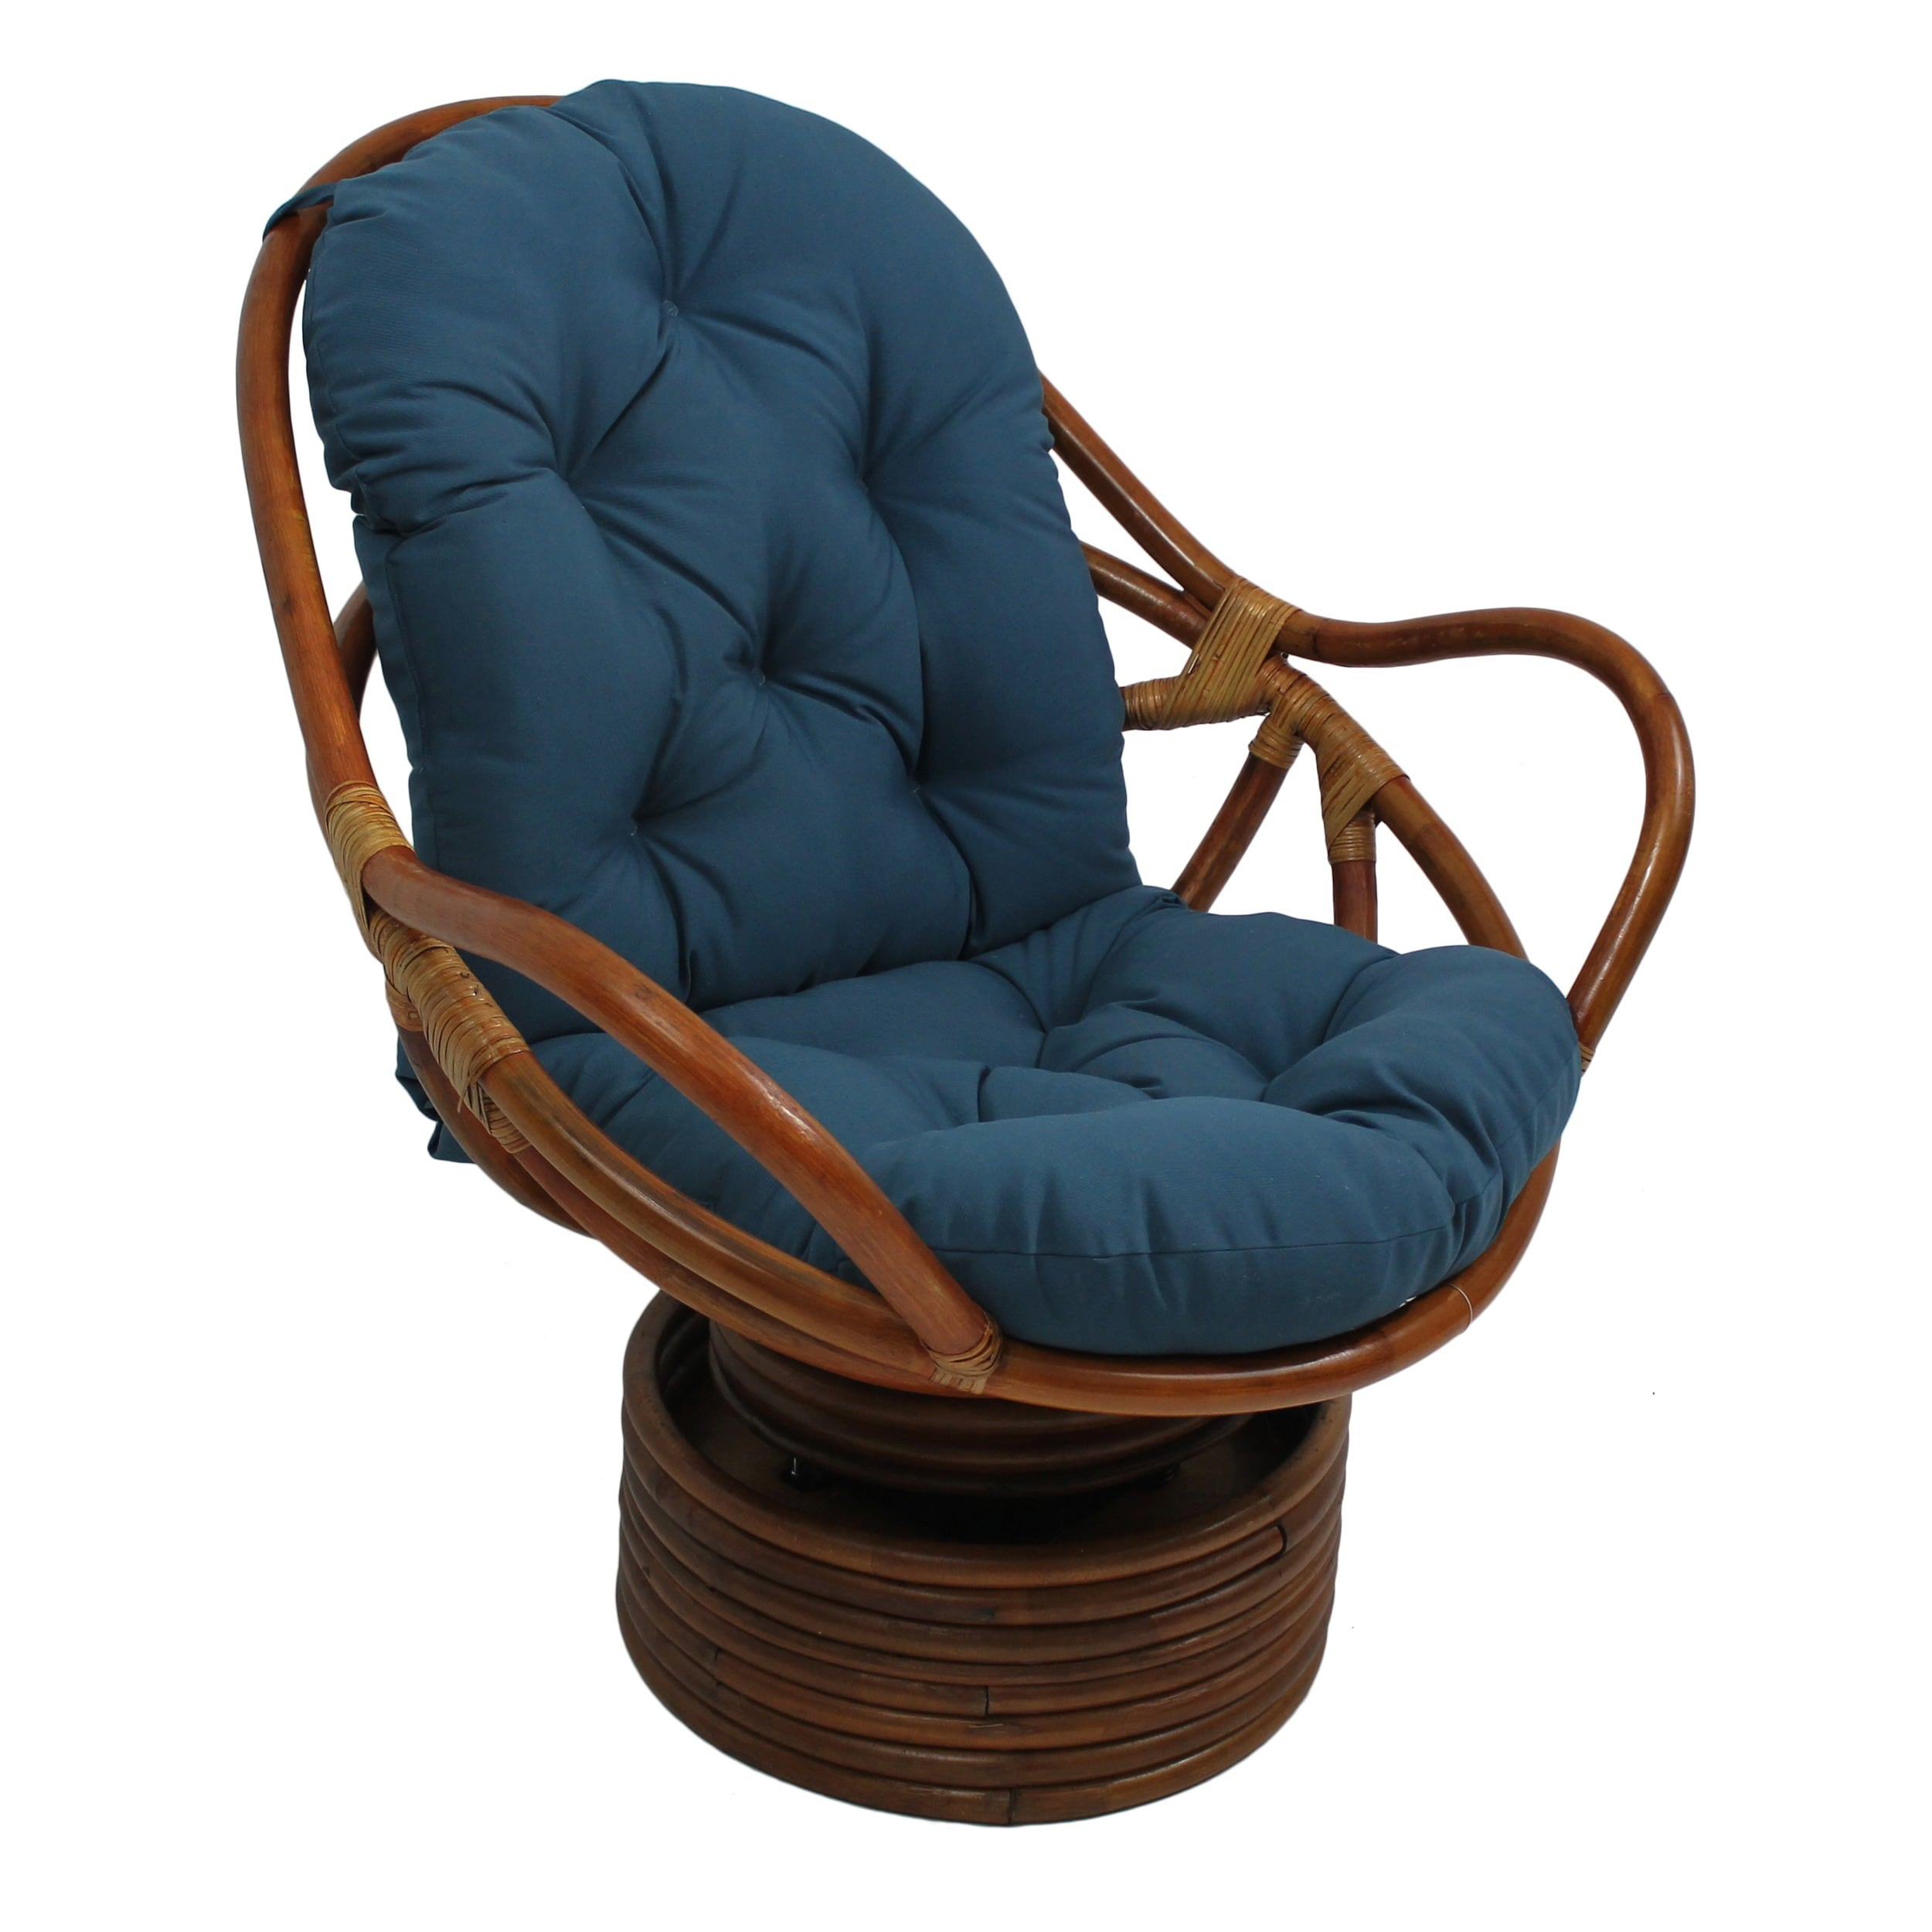 Wicker Allen Roth Lawley Patio Rocking Chair Table Lowes additionally International Caravan Valencia Wicker Outdoor Glider Chair additionally 551902129308707511 in addition Sol Siesta Clubhouse Collection 4 Piece Deep Seating Conversation Set Cushioned Outdoor Resin Wicker Patio Furniture moreover 11071327. on indoor outdoor rocking chair cushions